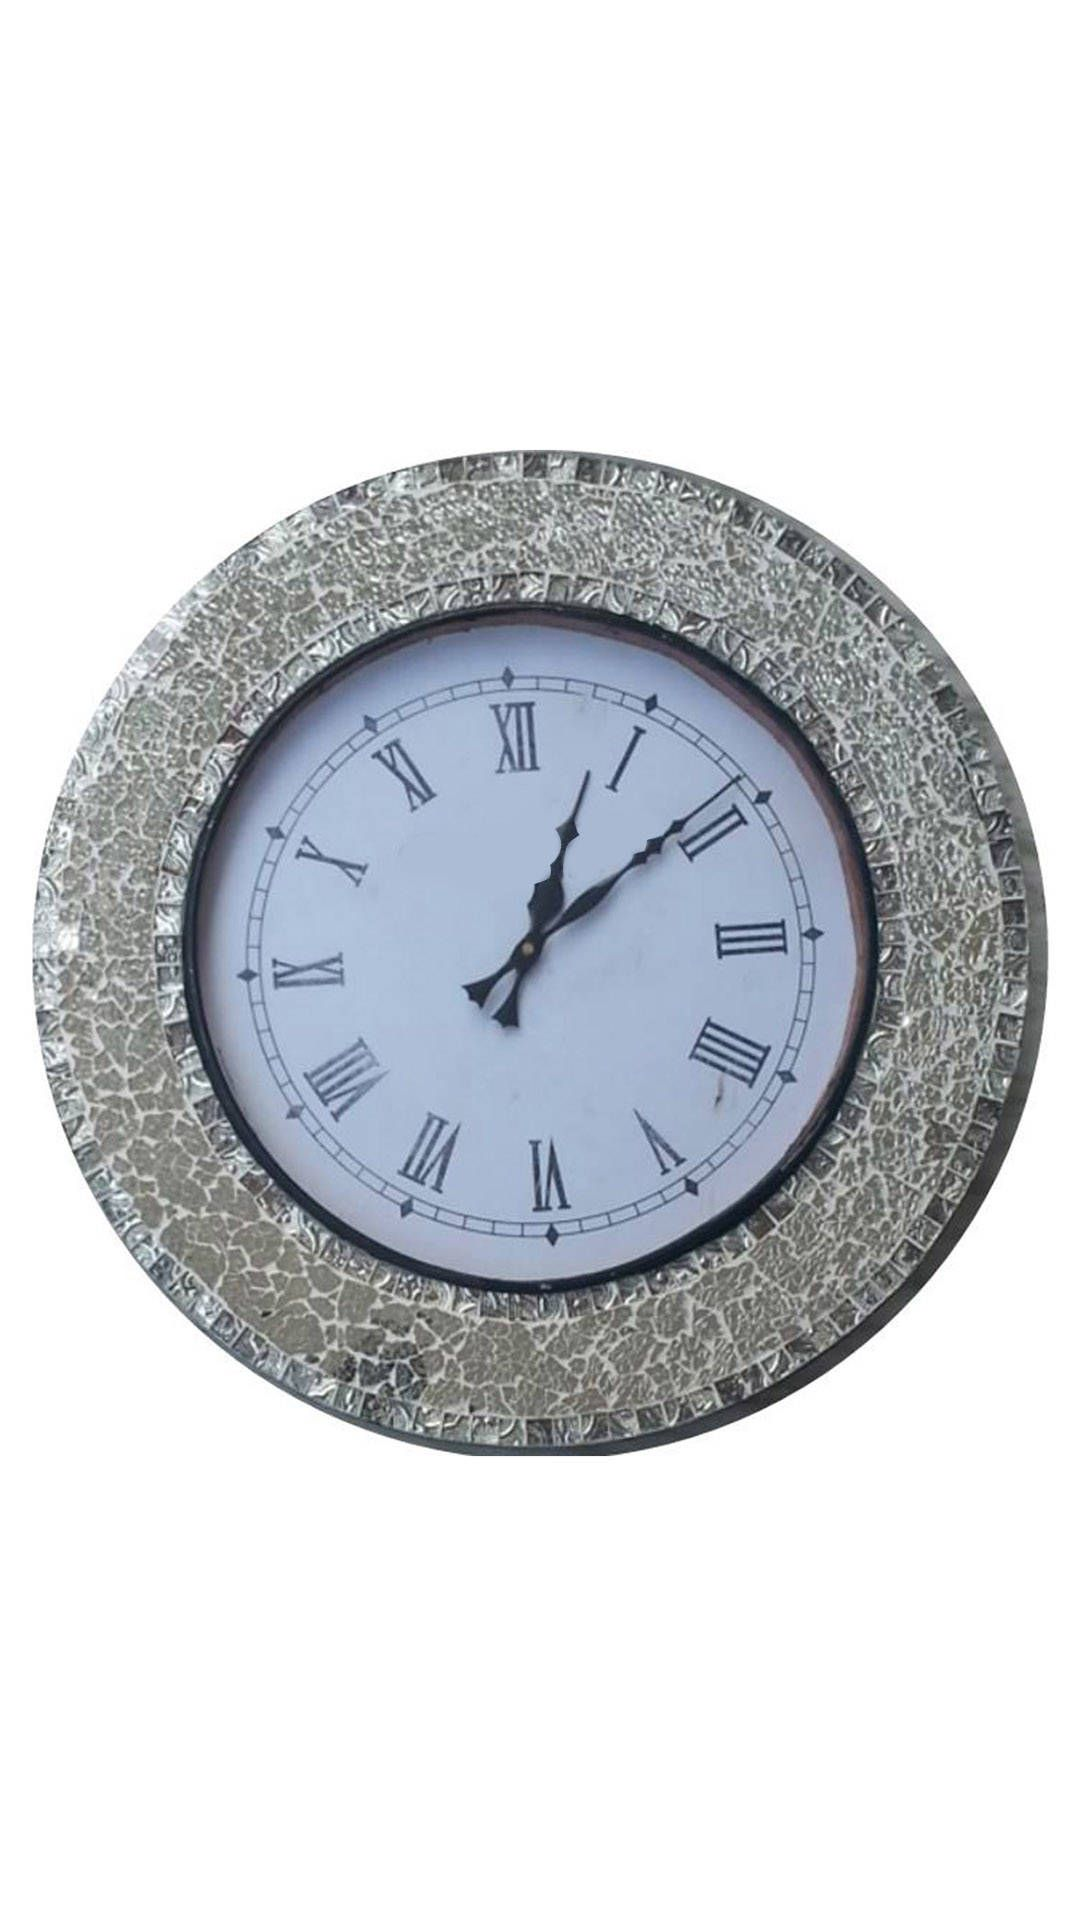 Silver Mosaic Wall Clock Online At Low Prices In India Stuff You